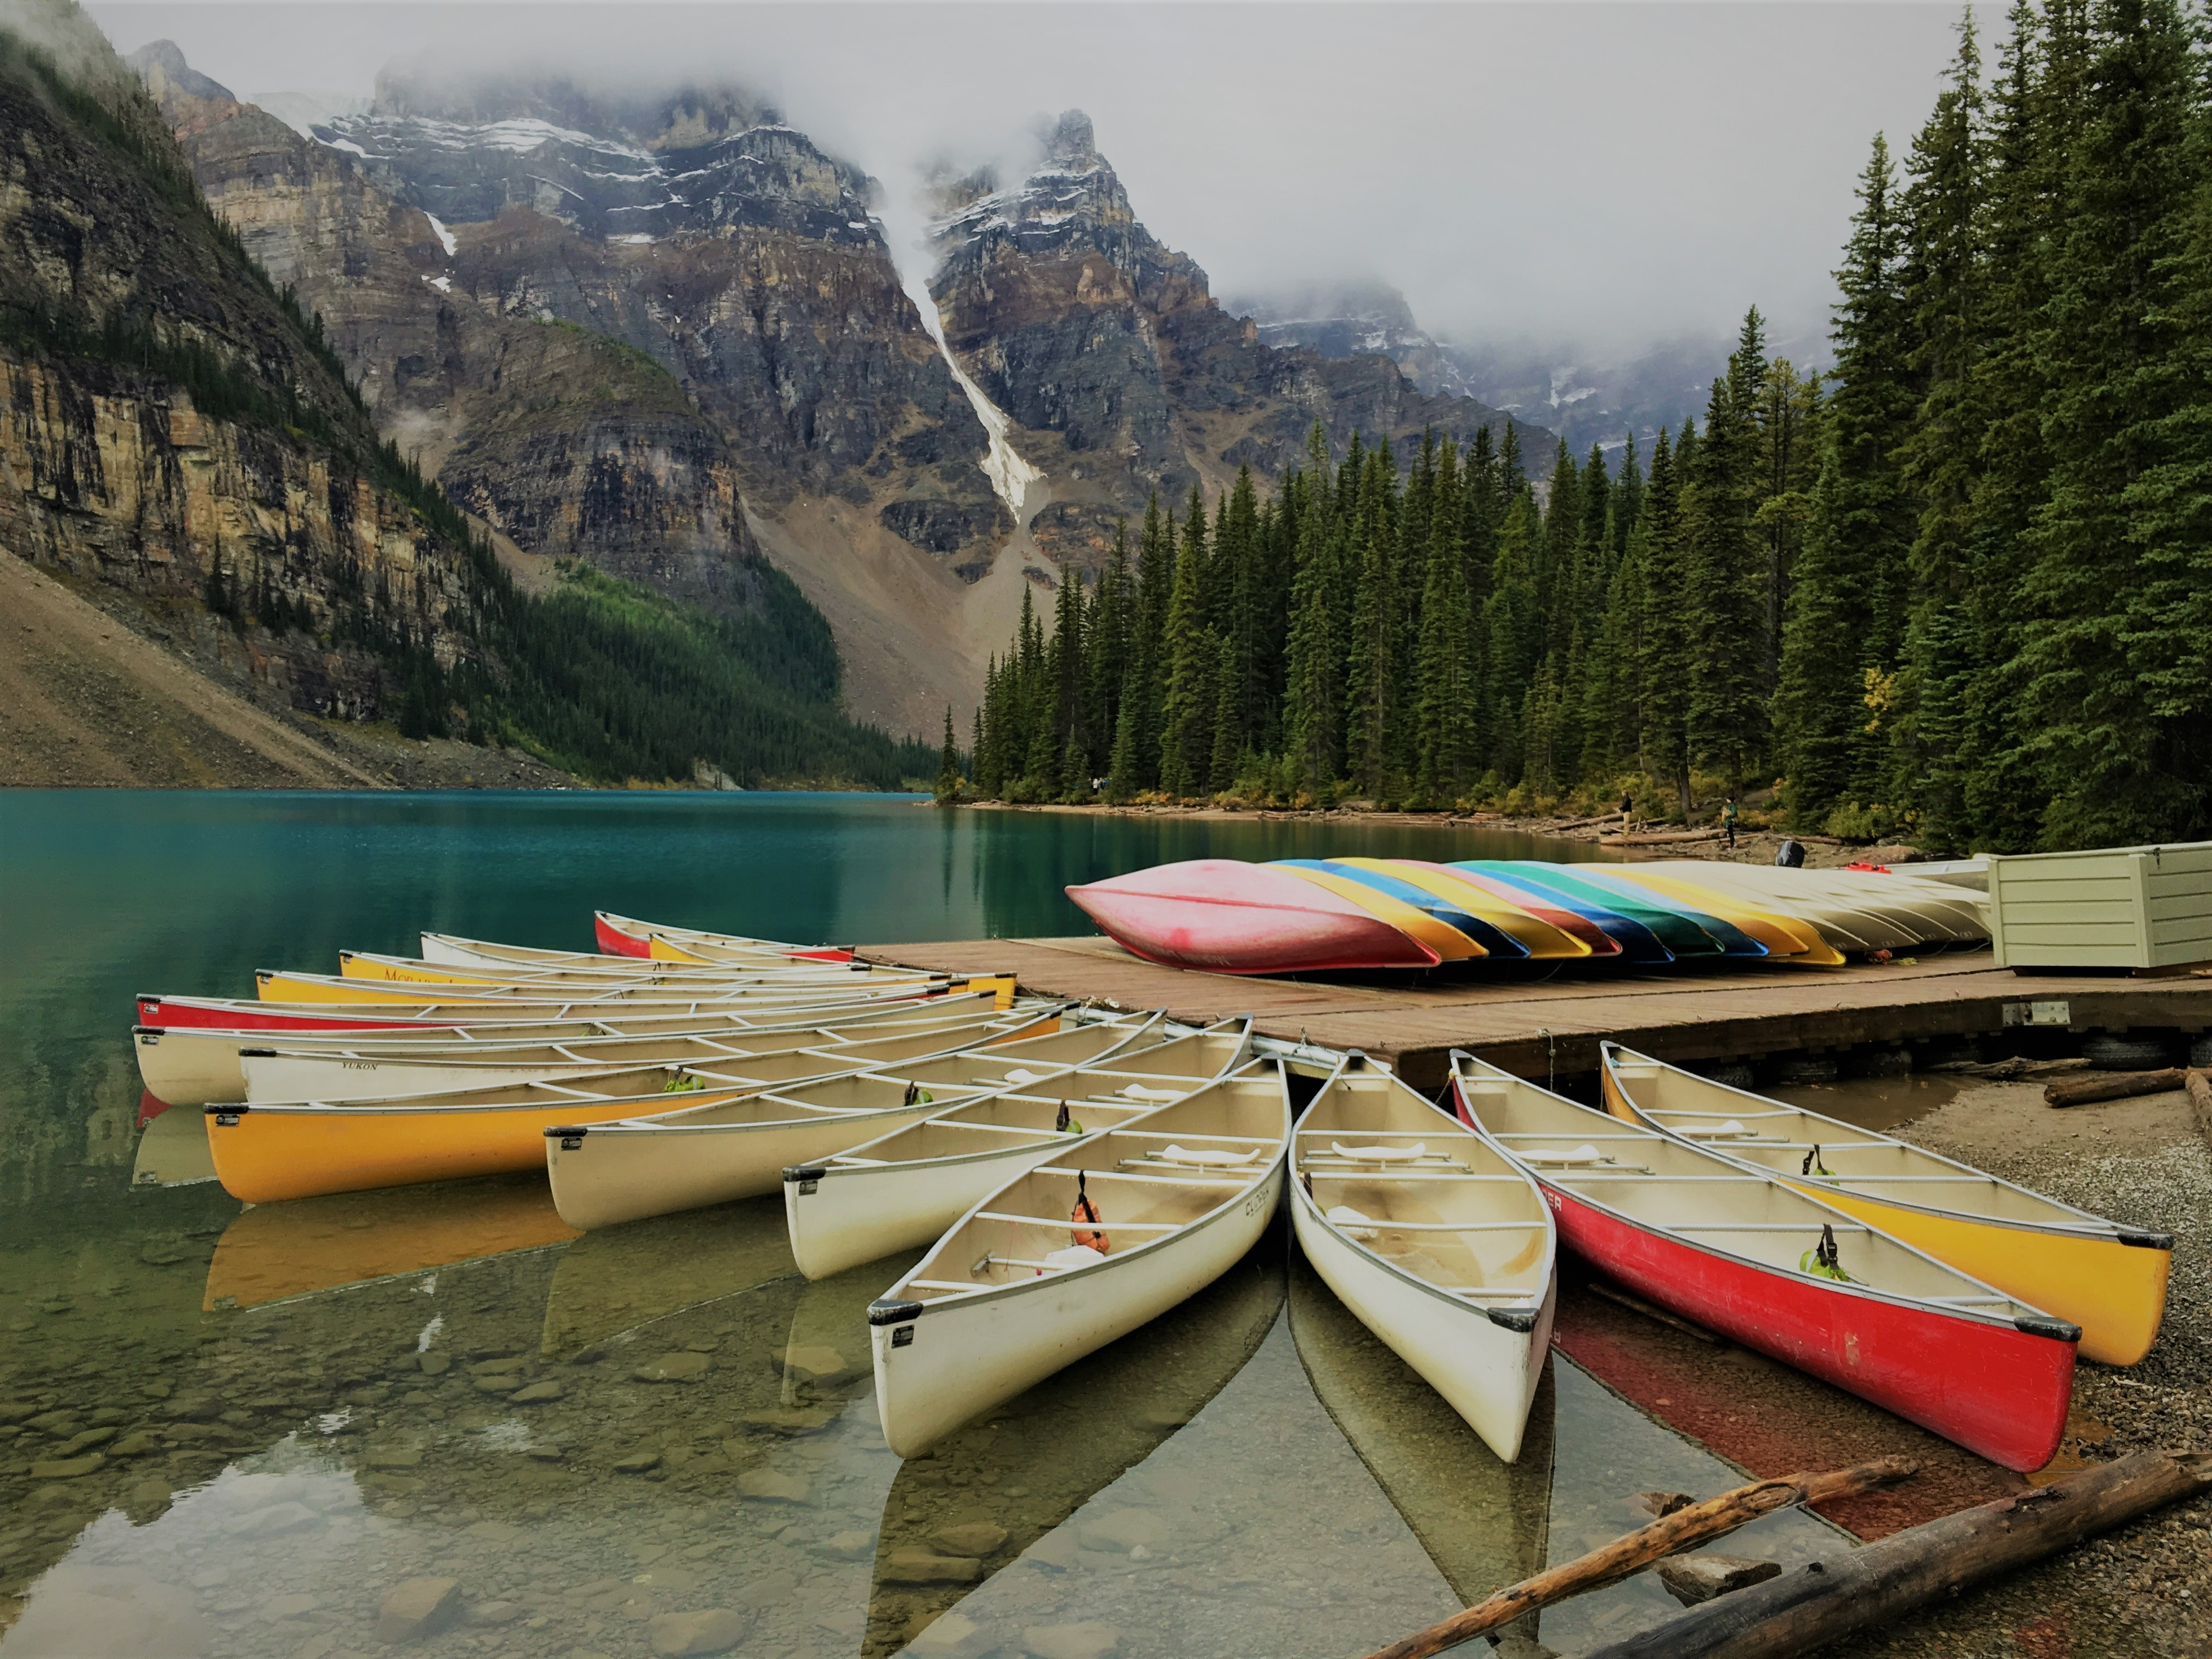 photo of assorted-color canoes on body of water surrounded by pine trees